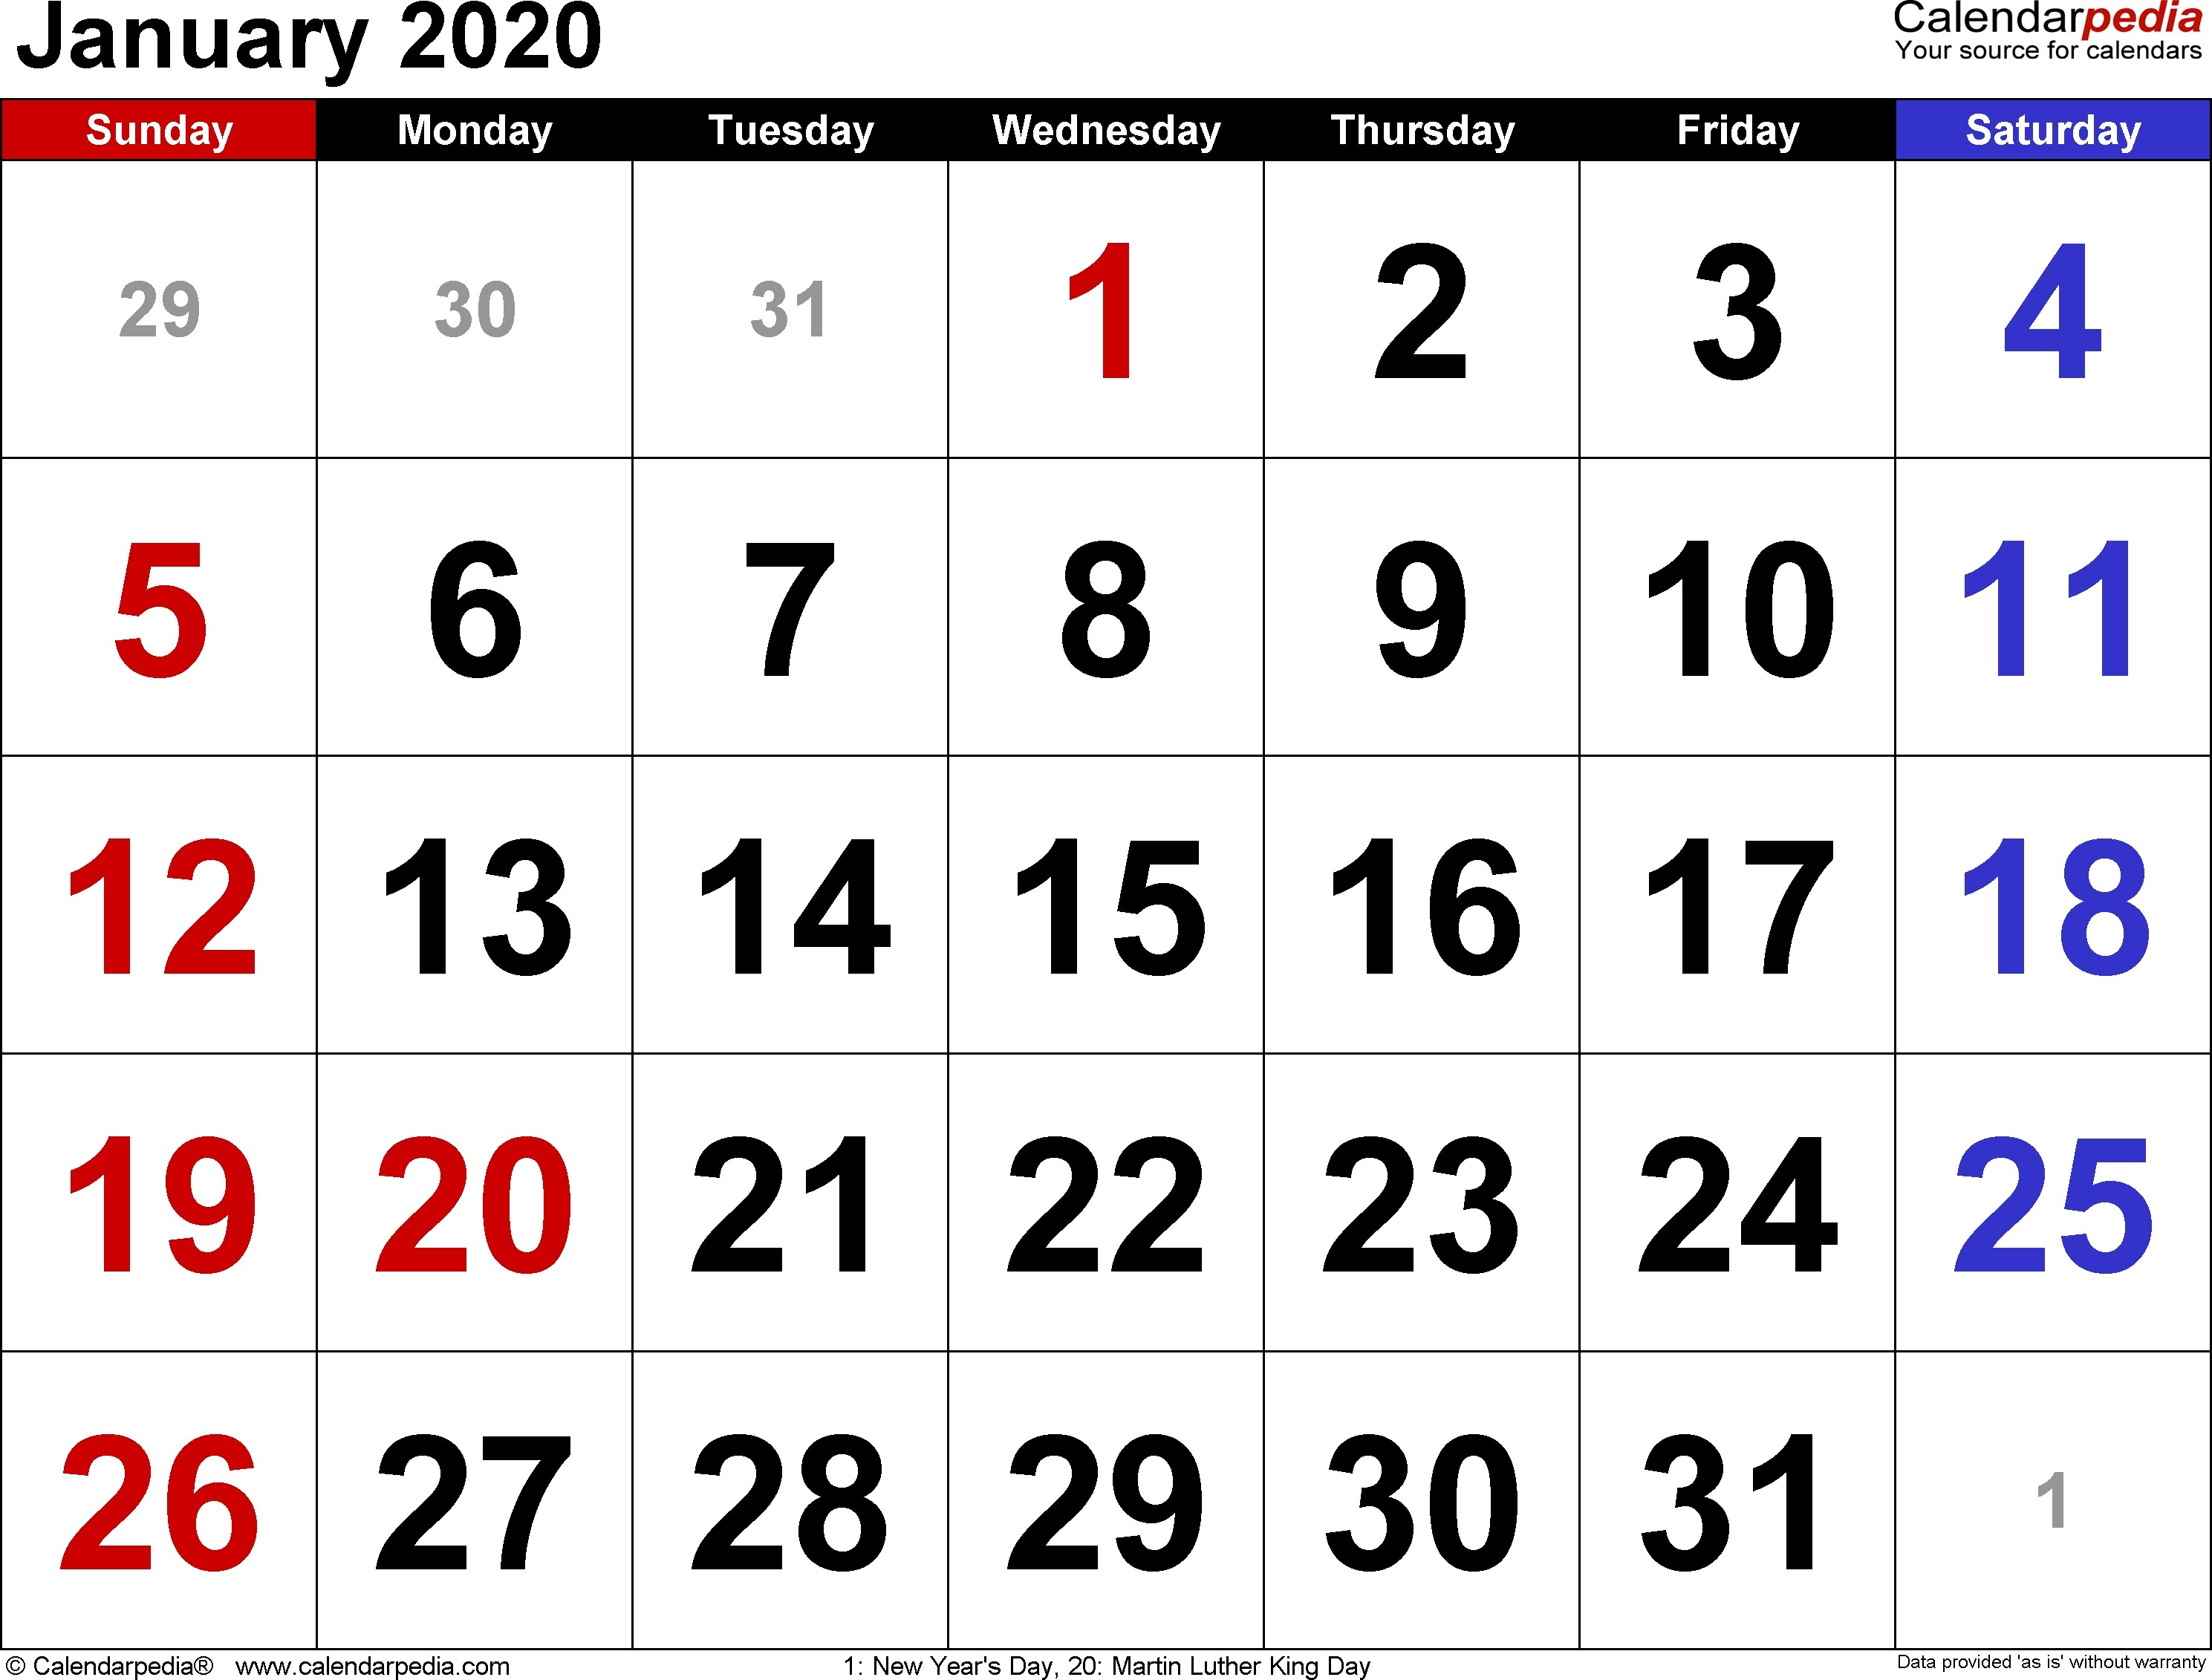 Calendar 2020 January - New Calendar Collection-January 2020 Calendar In Kannada